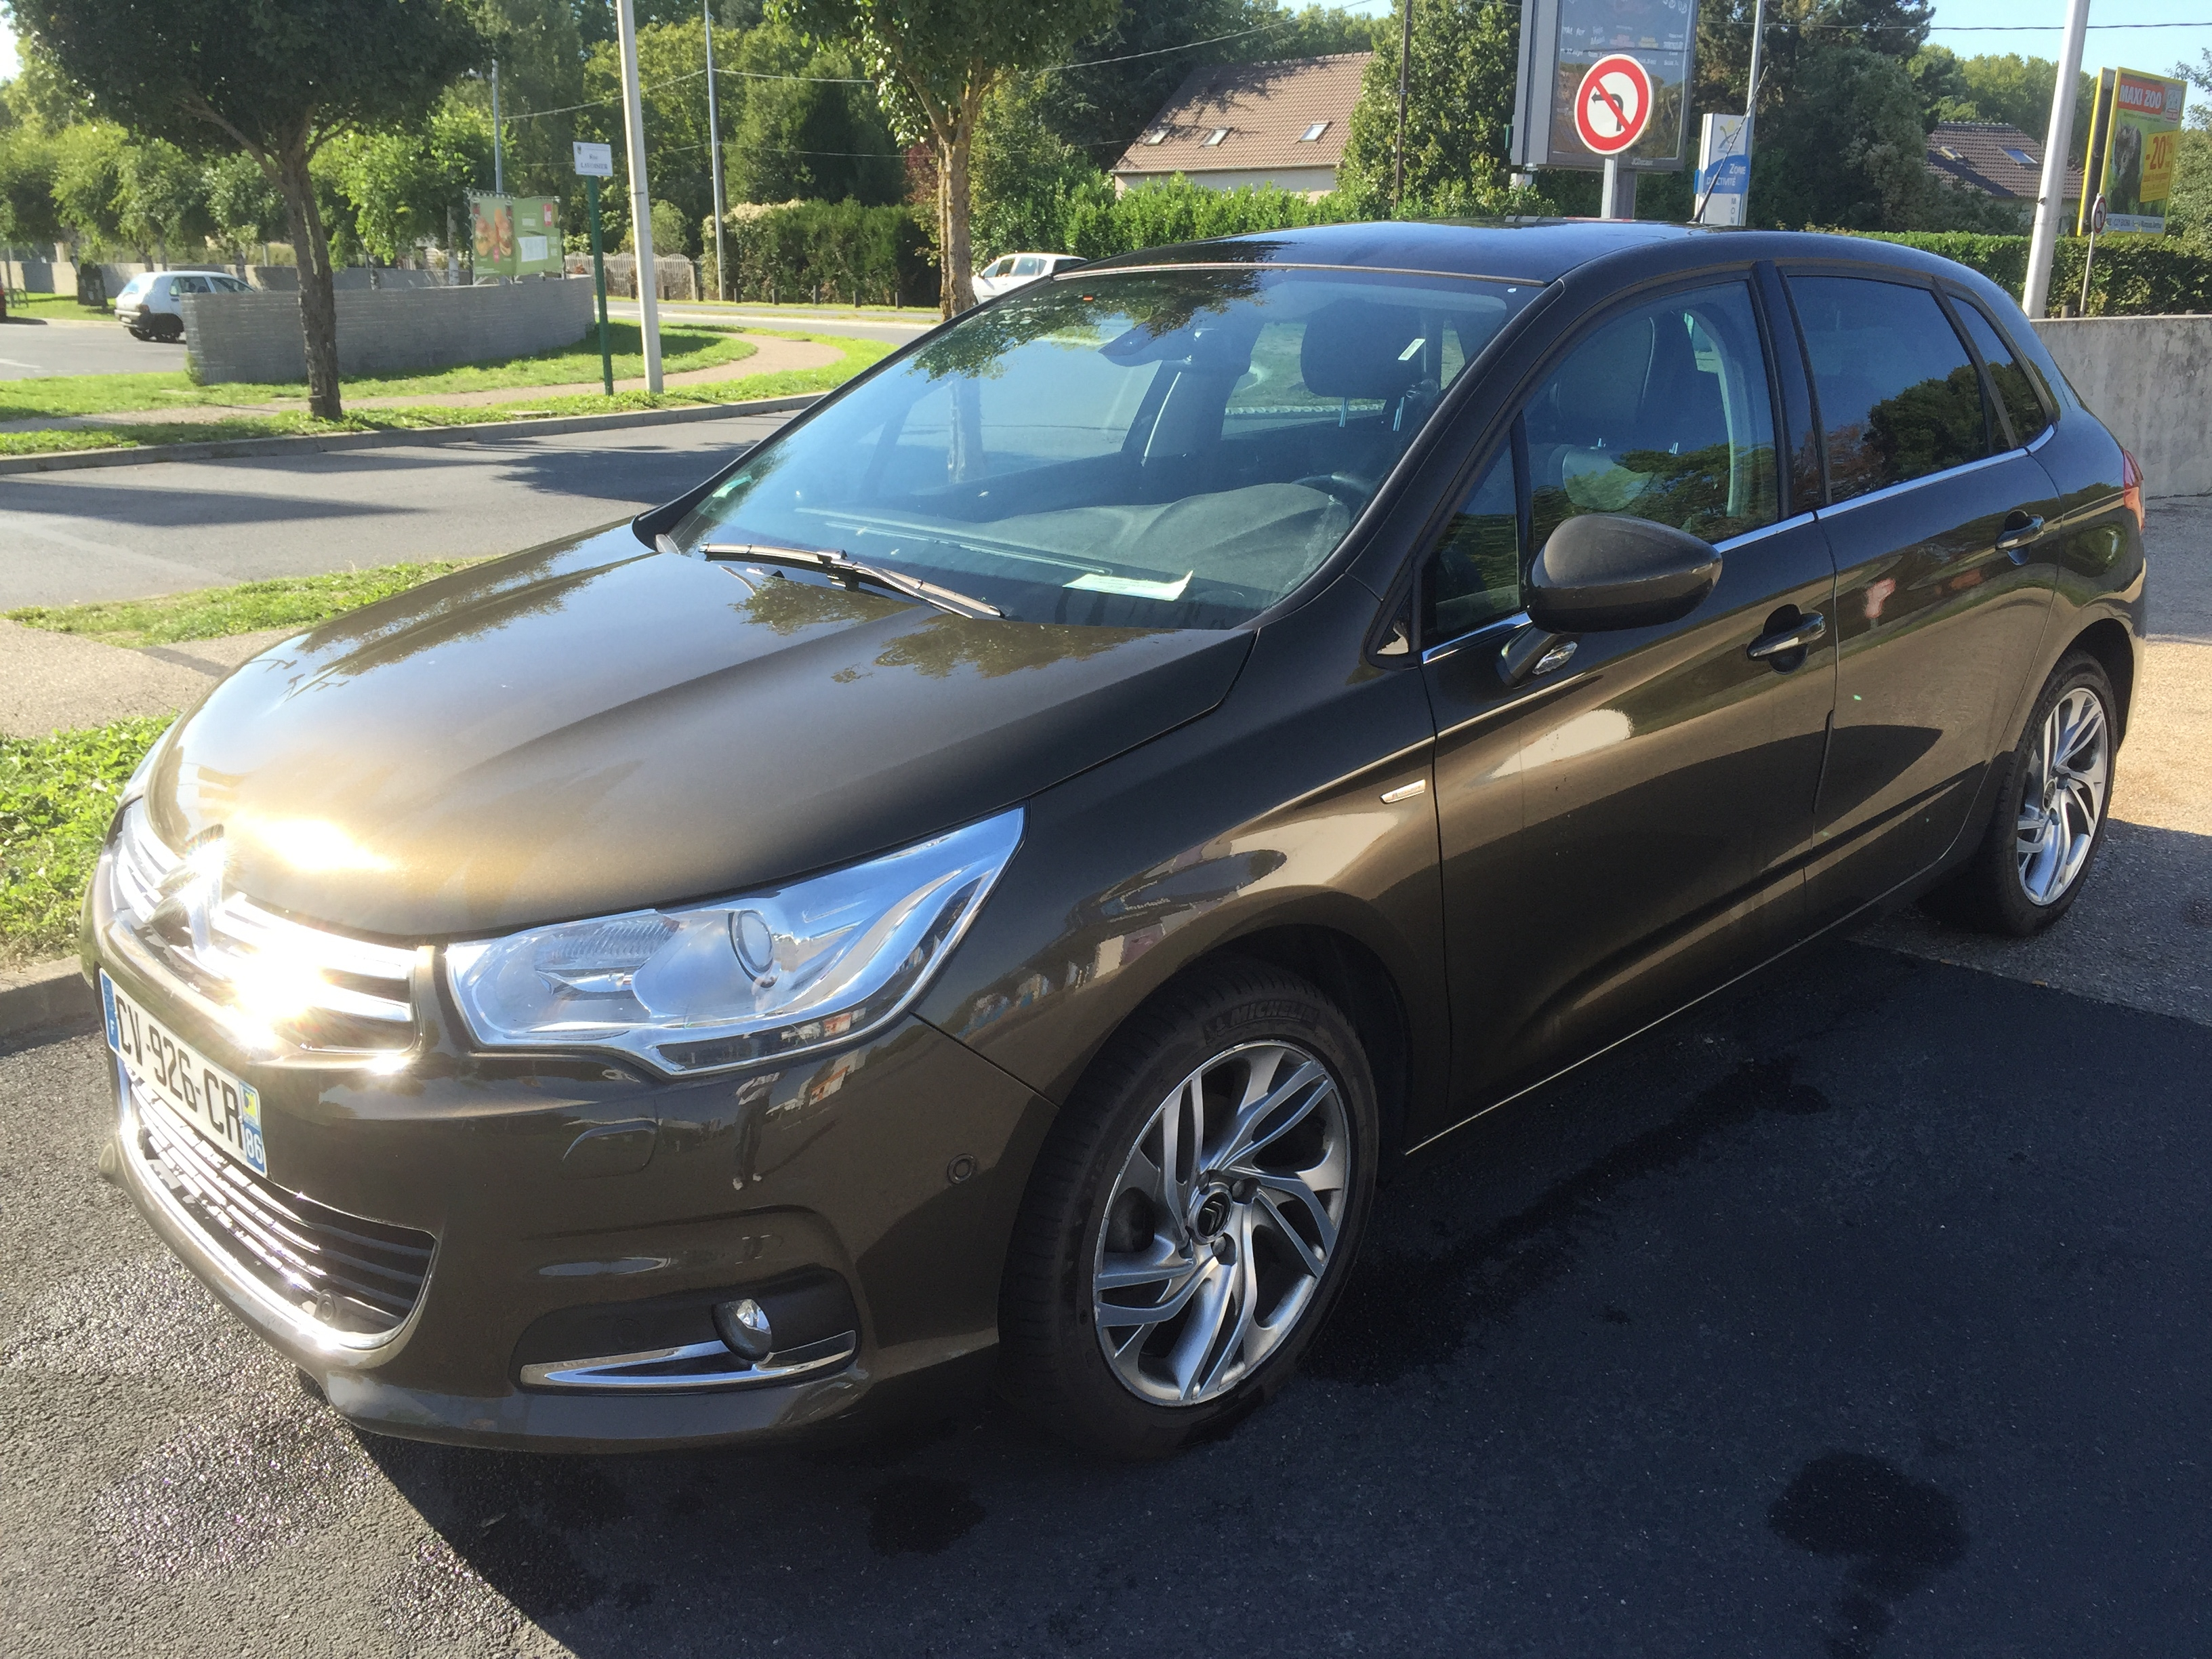 lhd CITROEN C4 (05/2013) - BROWN - lieu: